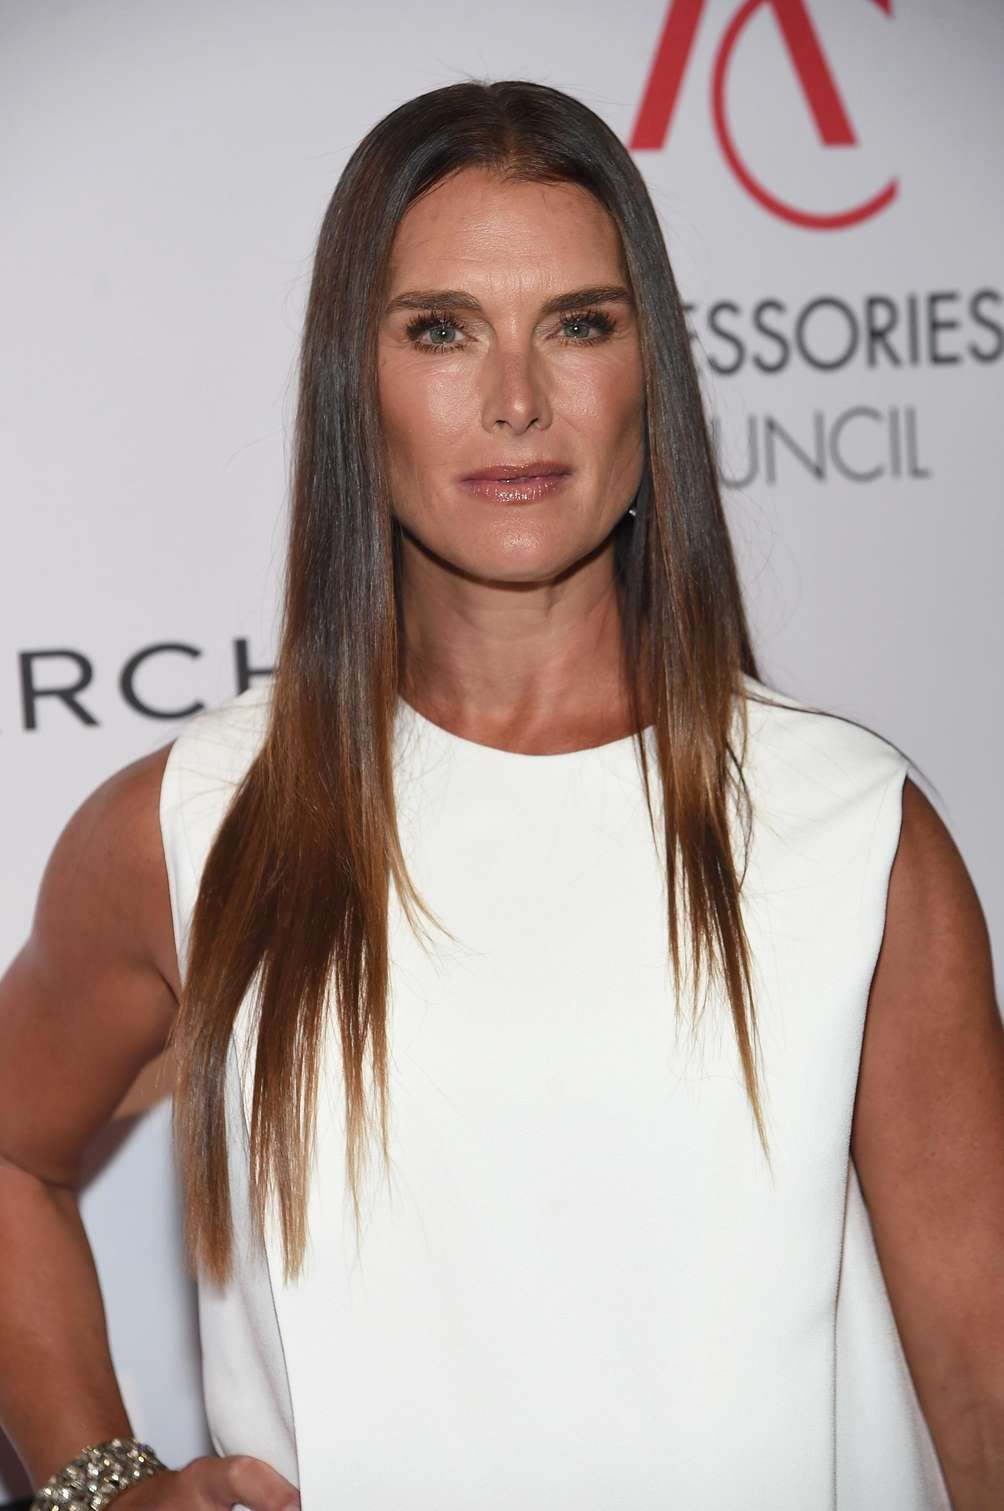 Brooke Shields at the Accessories Council's 21st Annual